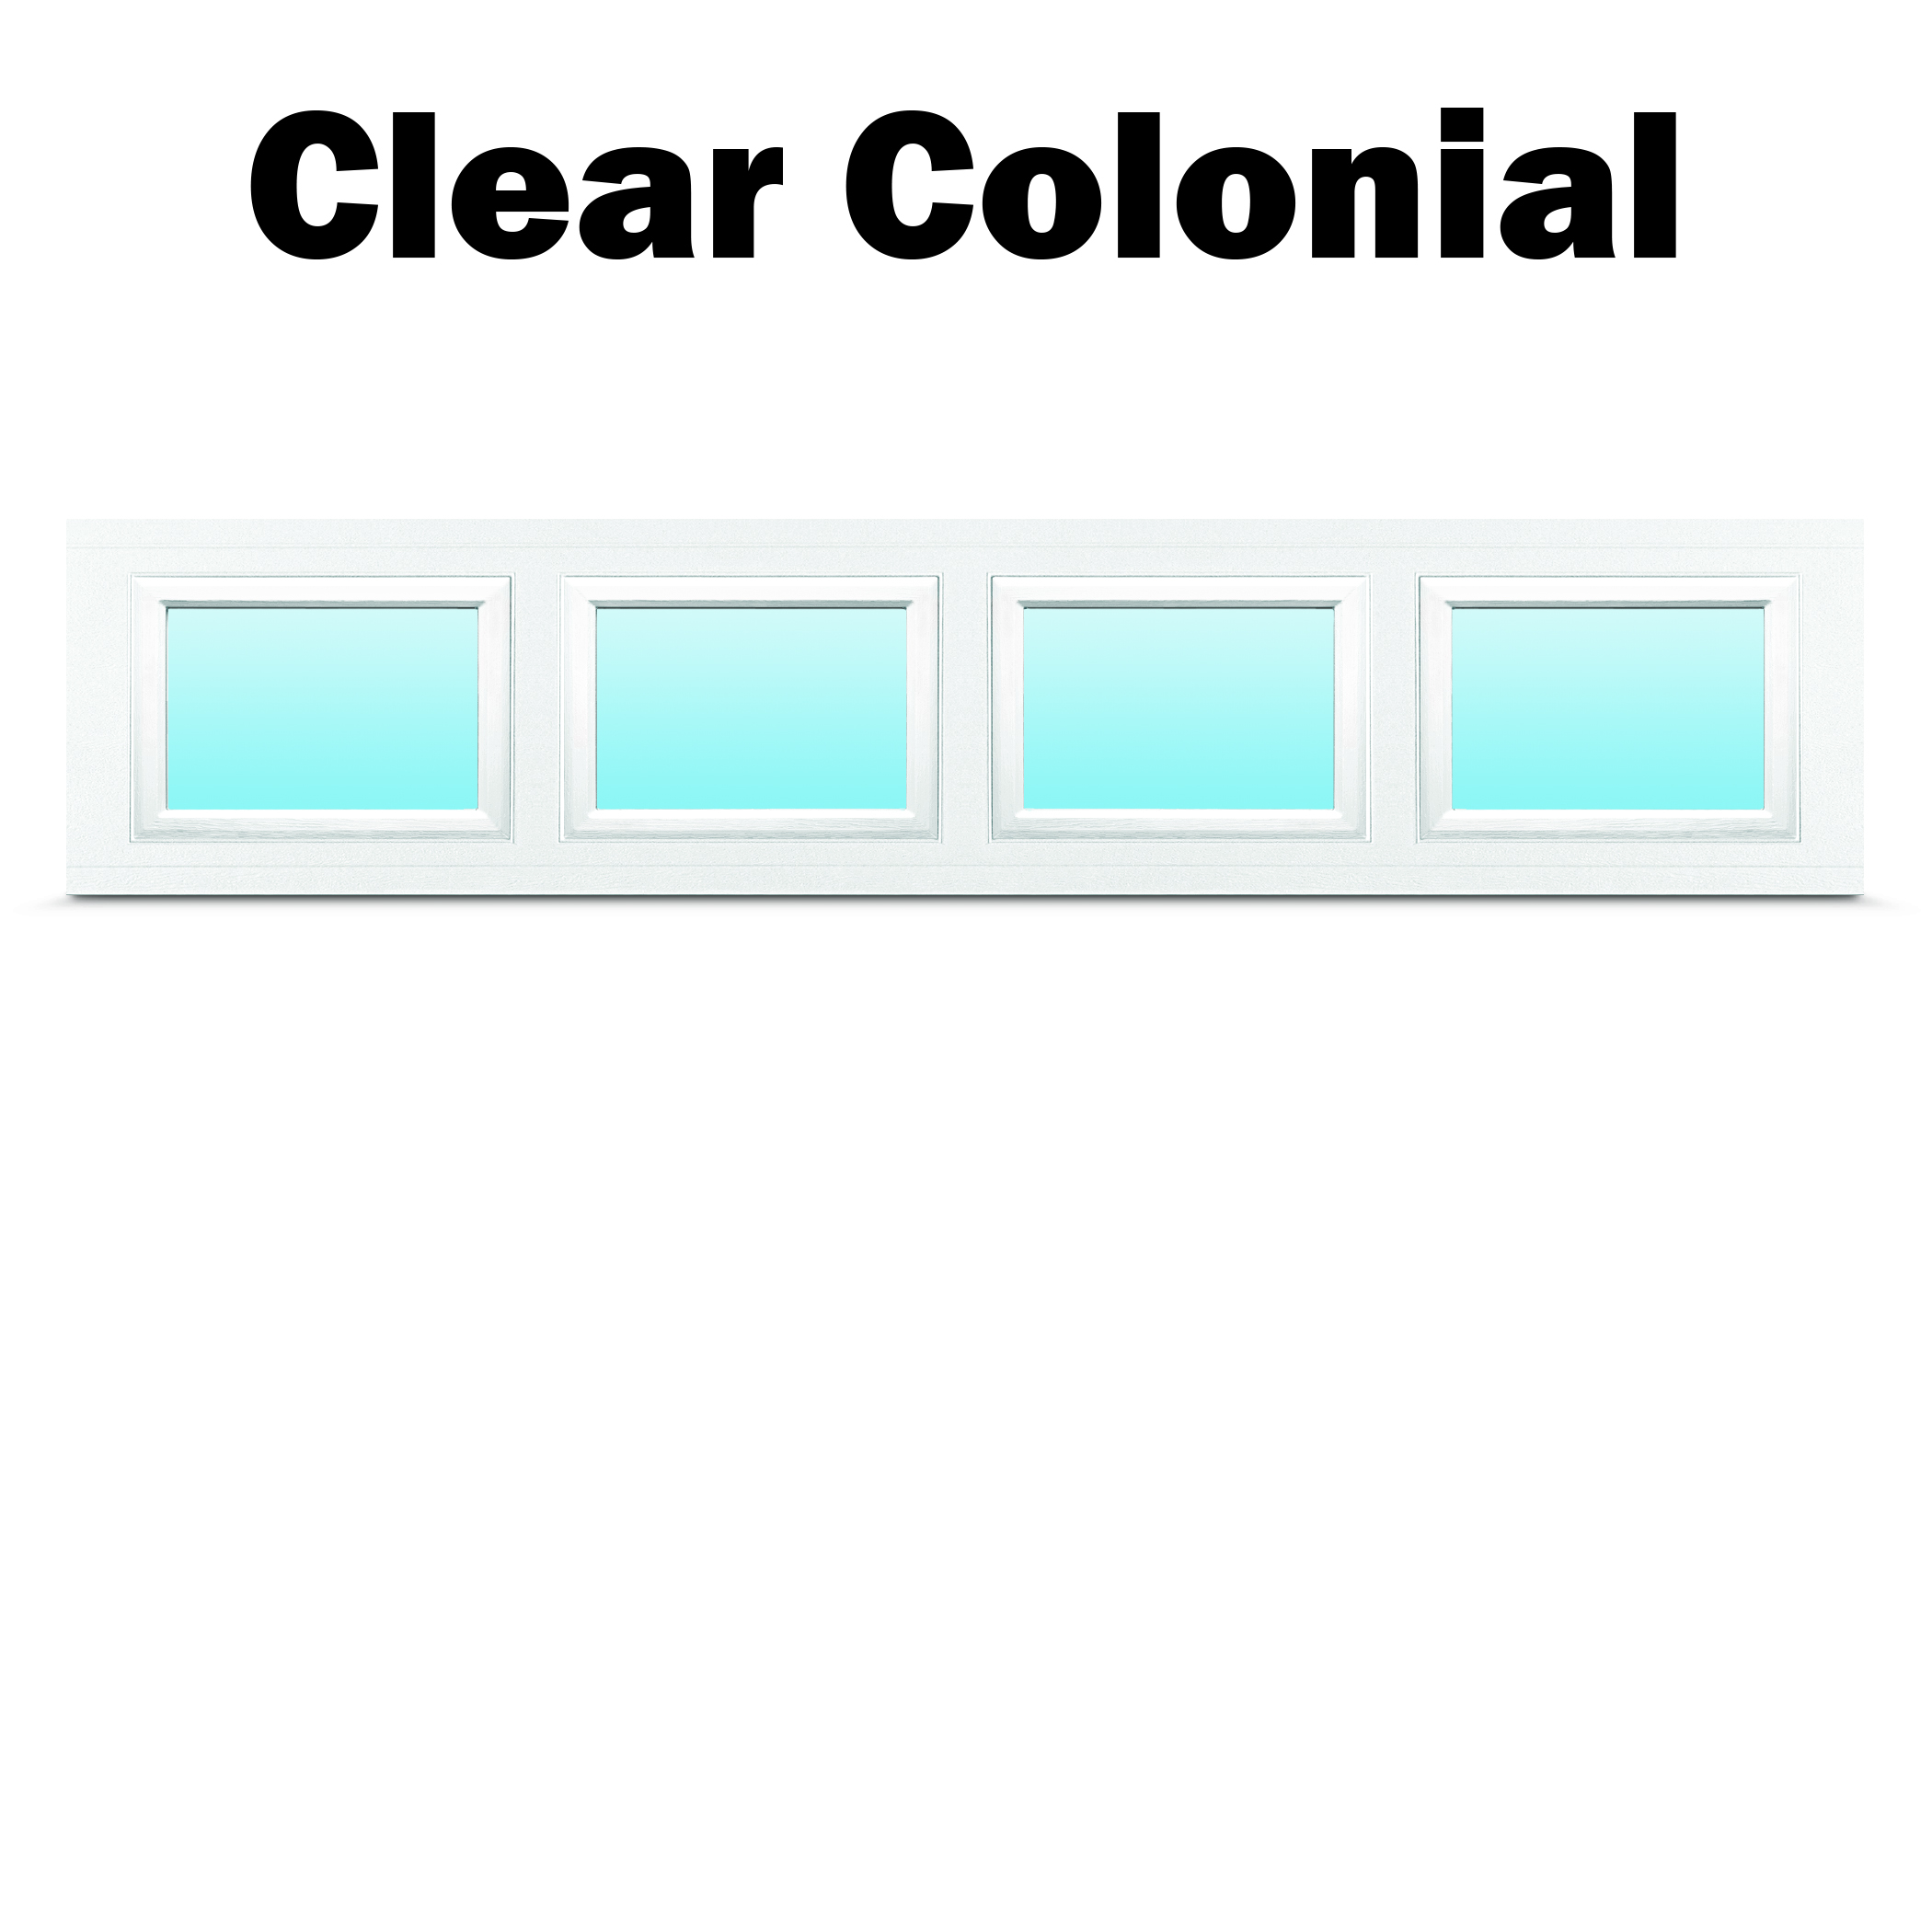 Clear Colonial - Premium Contemporary.jpg